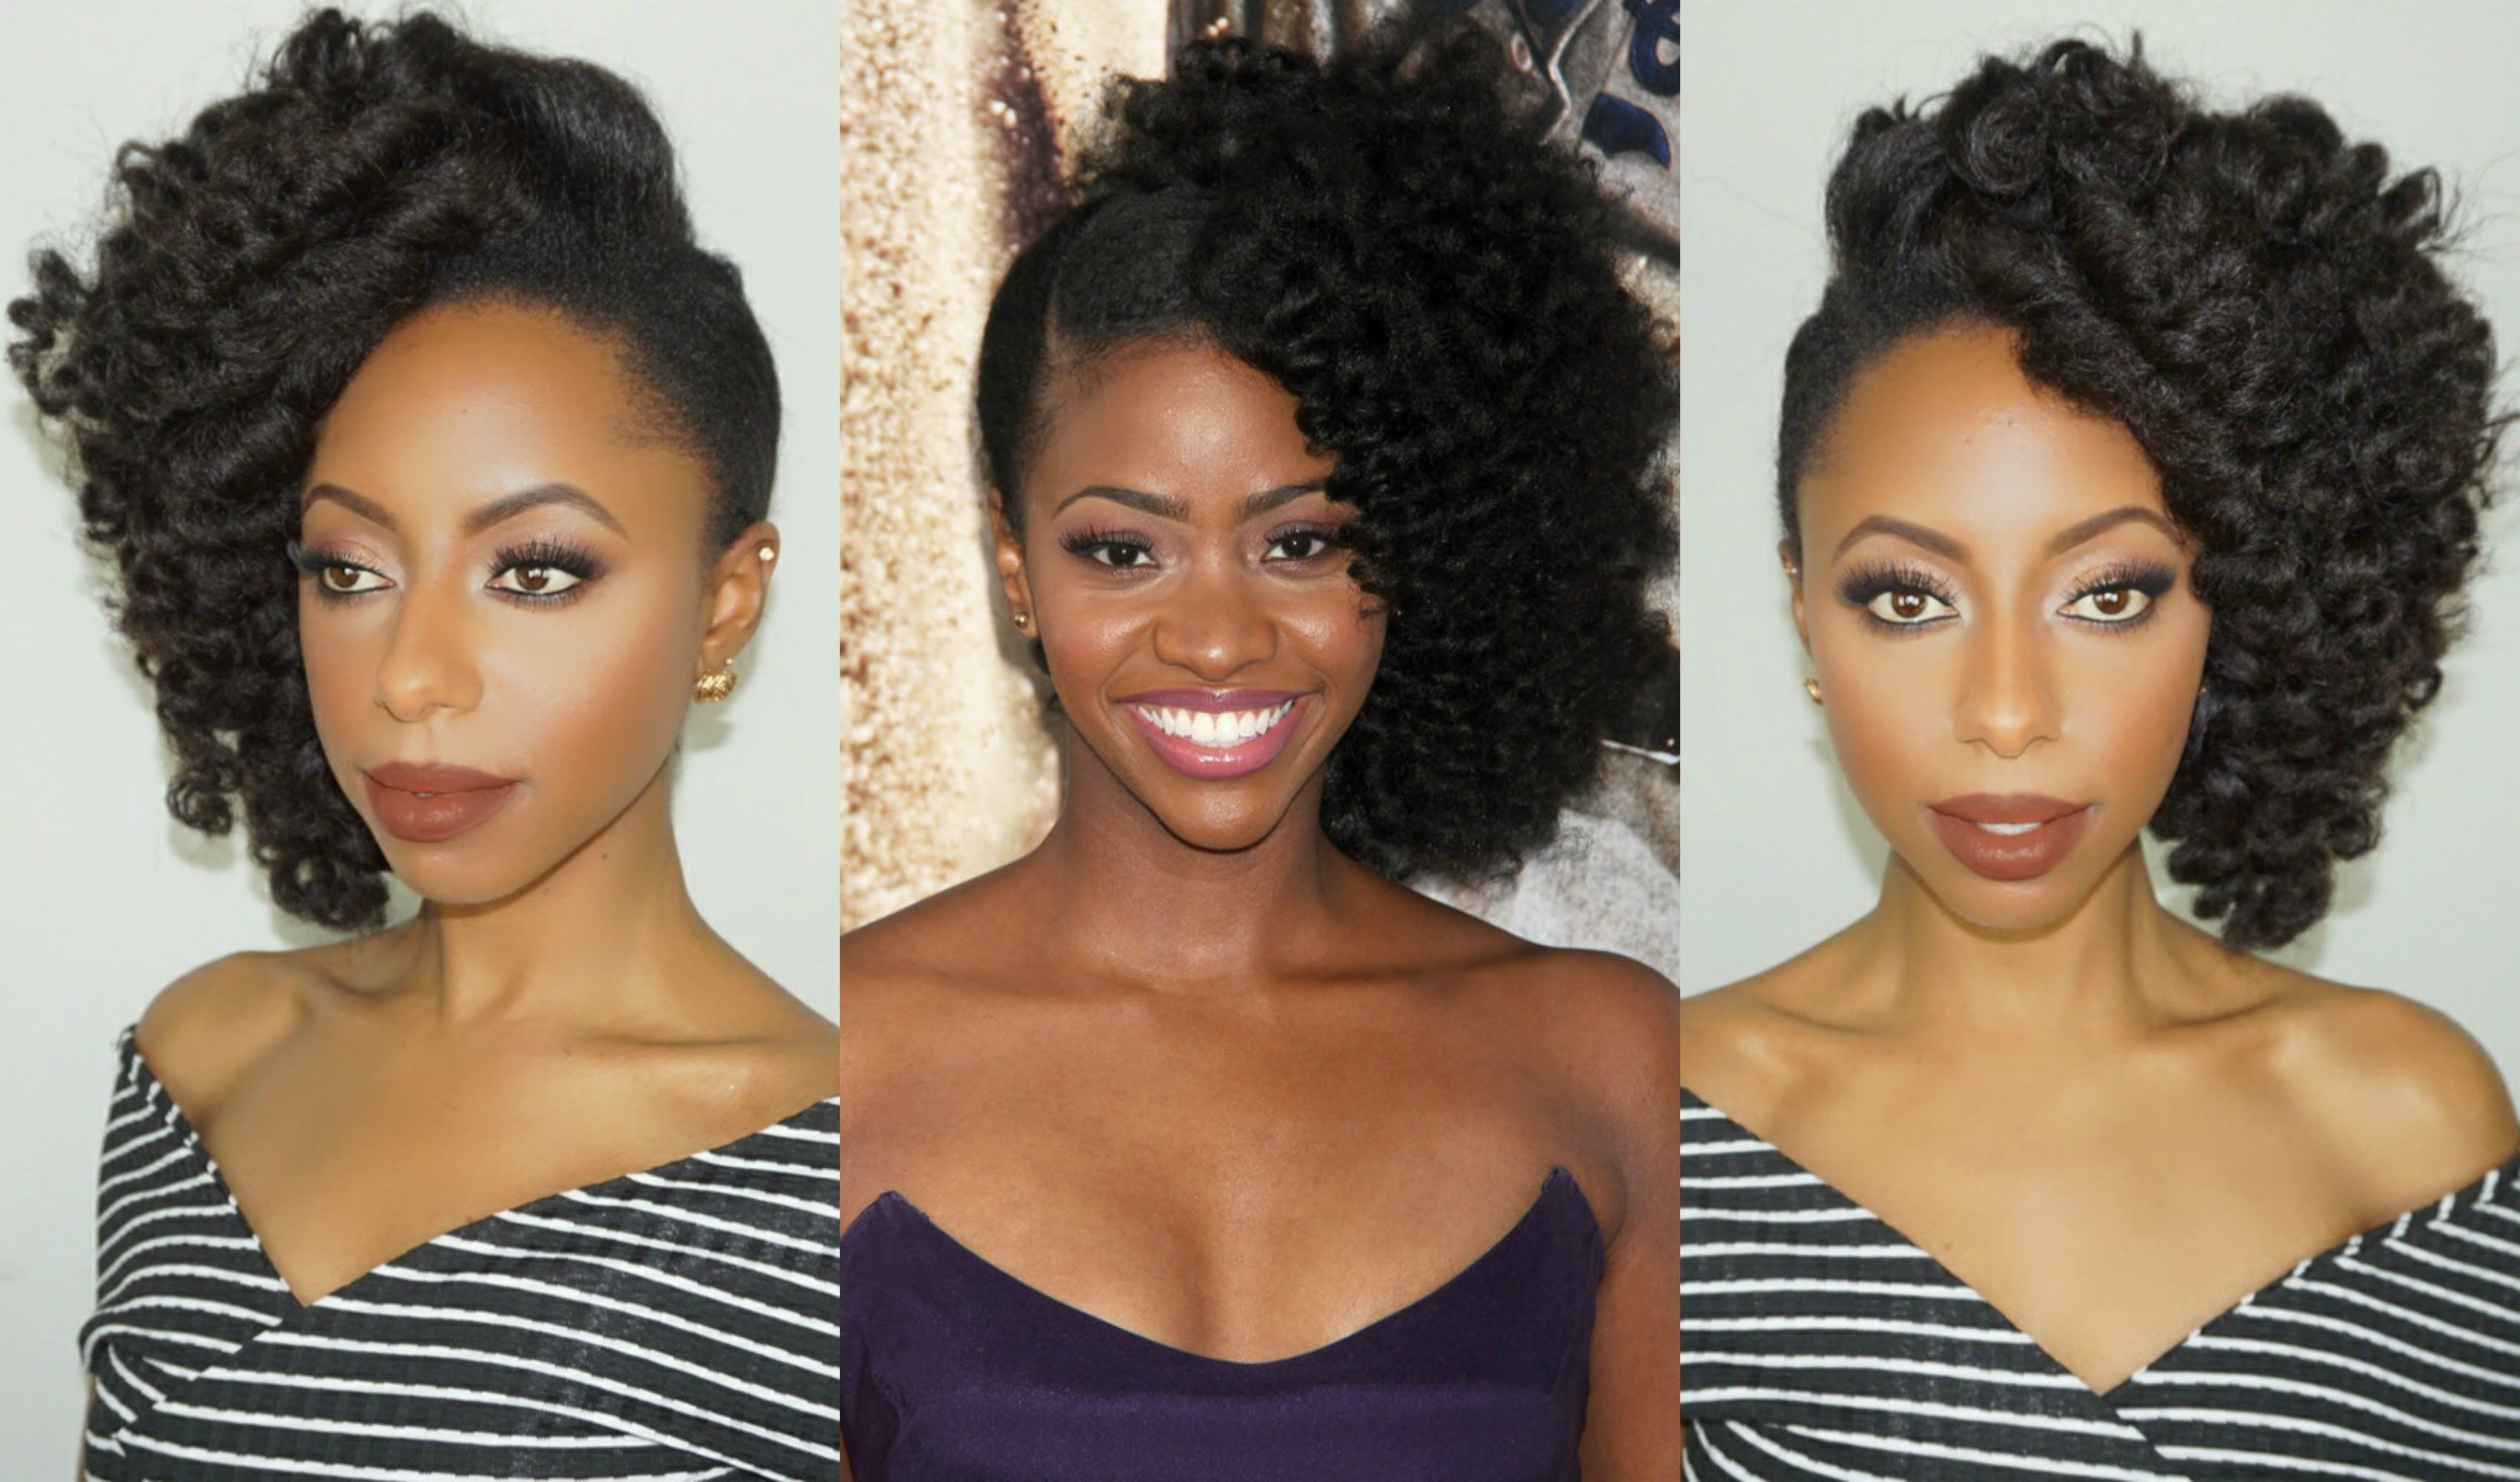 Teyonah Parris Inspired Red Carpet Side Swept Updo For Throughout Most Up To Date Side Hairstyles With Puff And Curls (View 16 of 20)